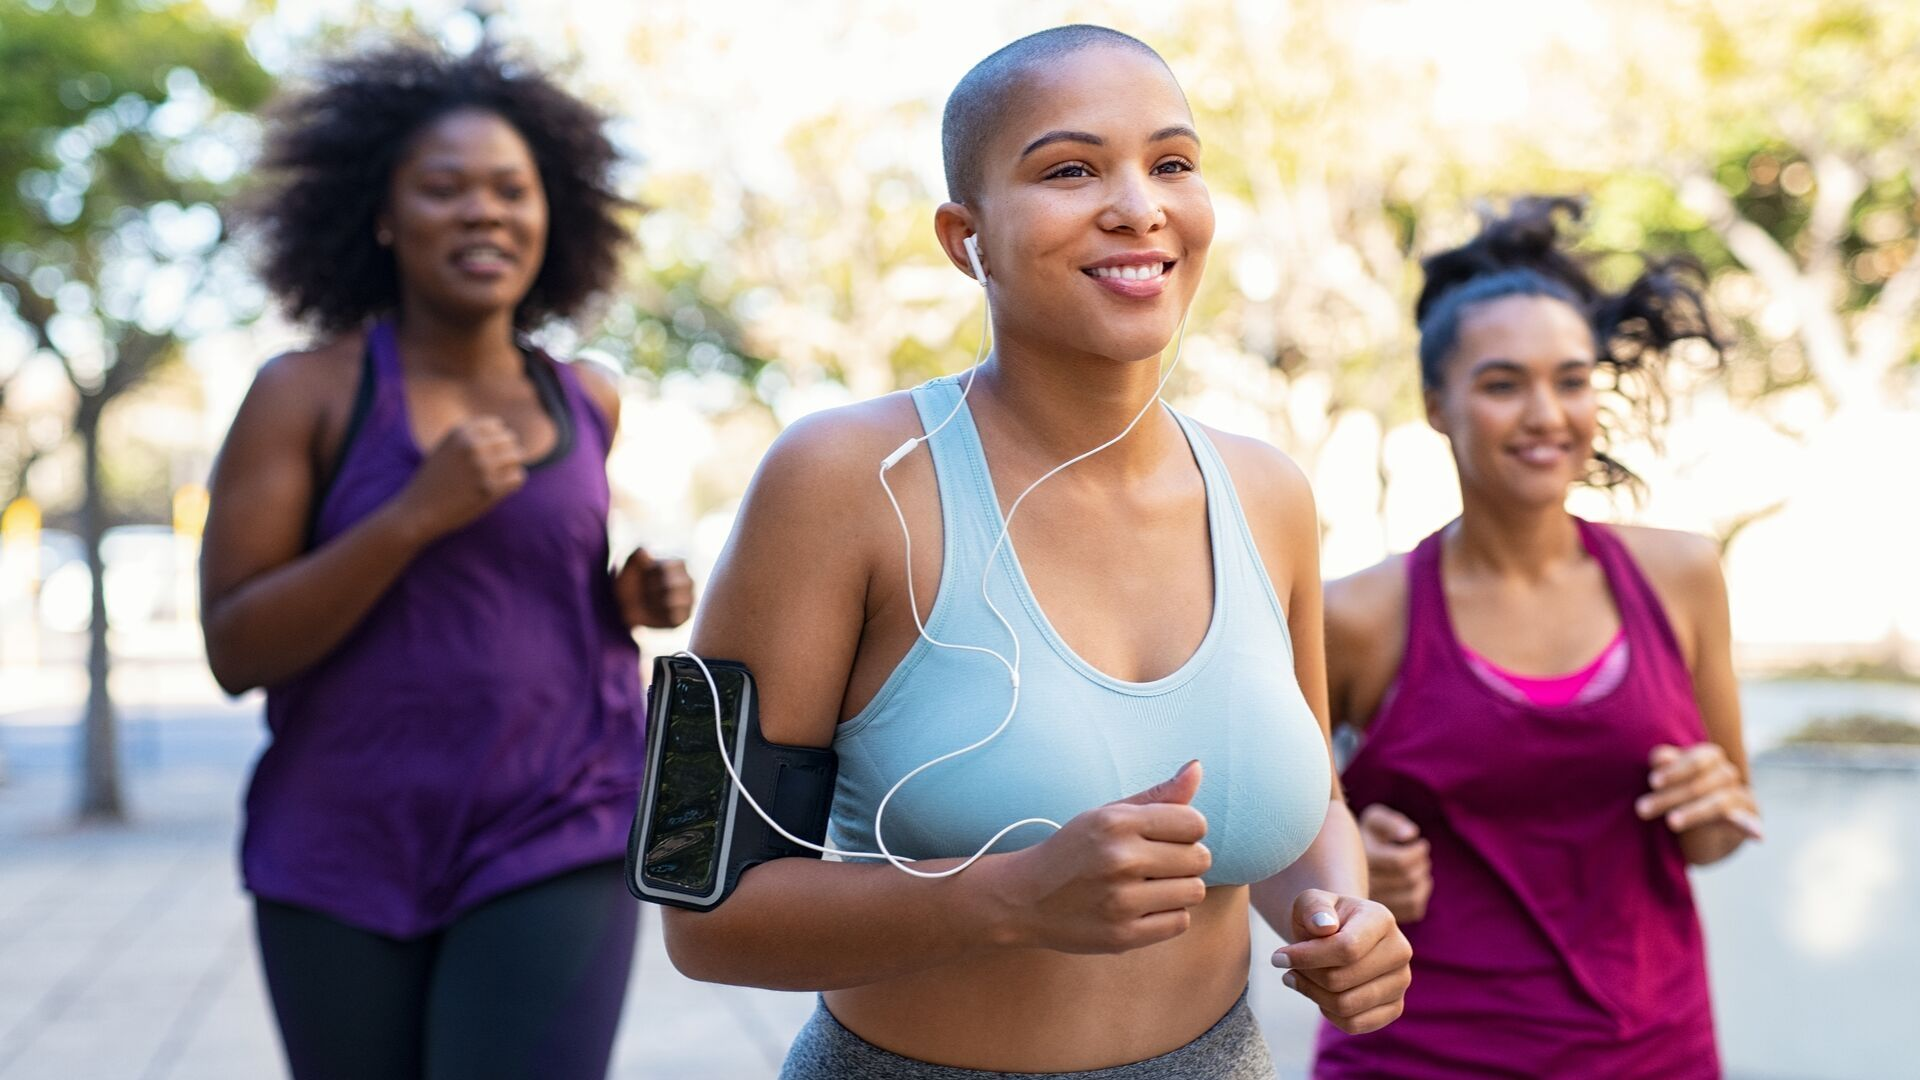 Top 6 women-specific running injuries and how to prevent them #run #running #bgr #blackgirlsrun #runnersinjuries #injuryprevention #runningtips